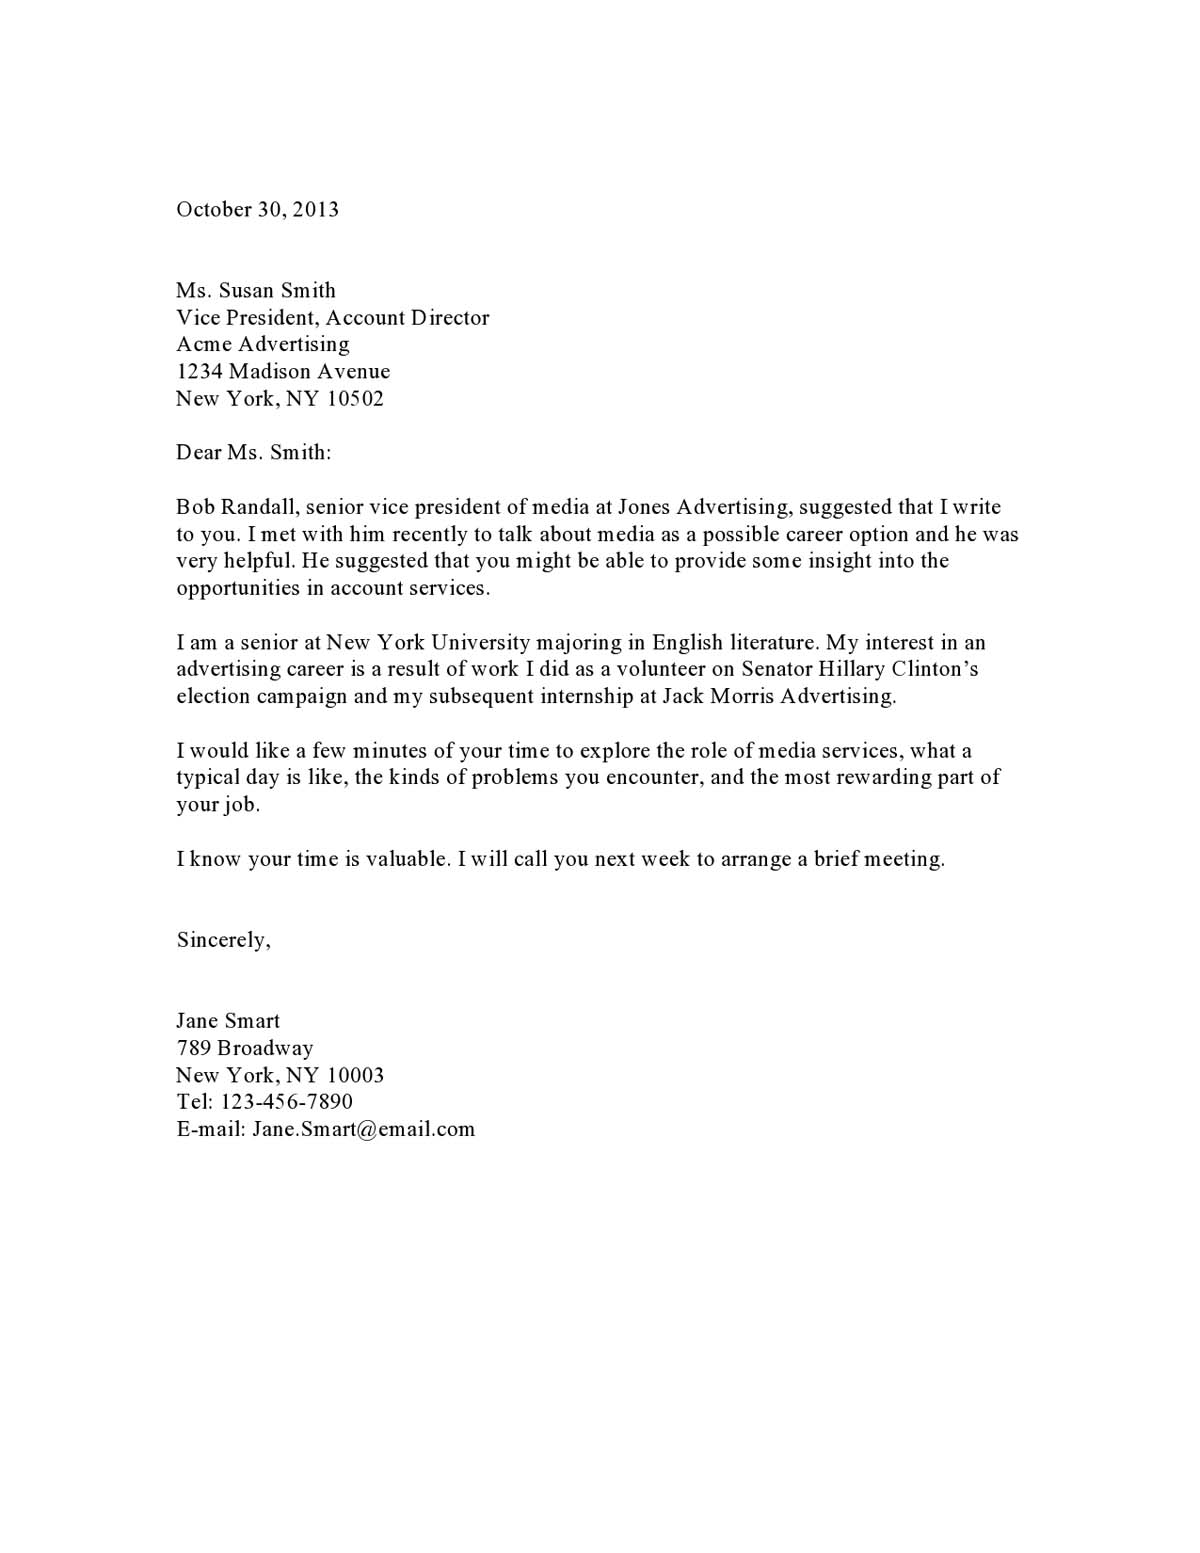 cover letter looking for new opportunities - sample cover letter for applying a job